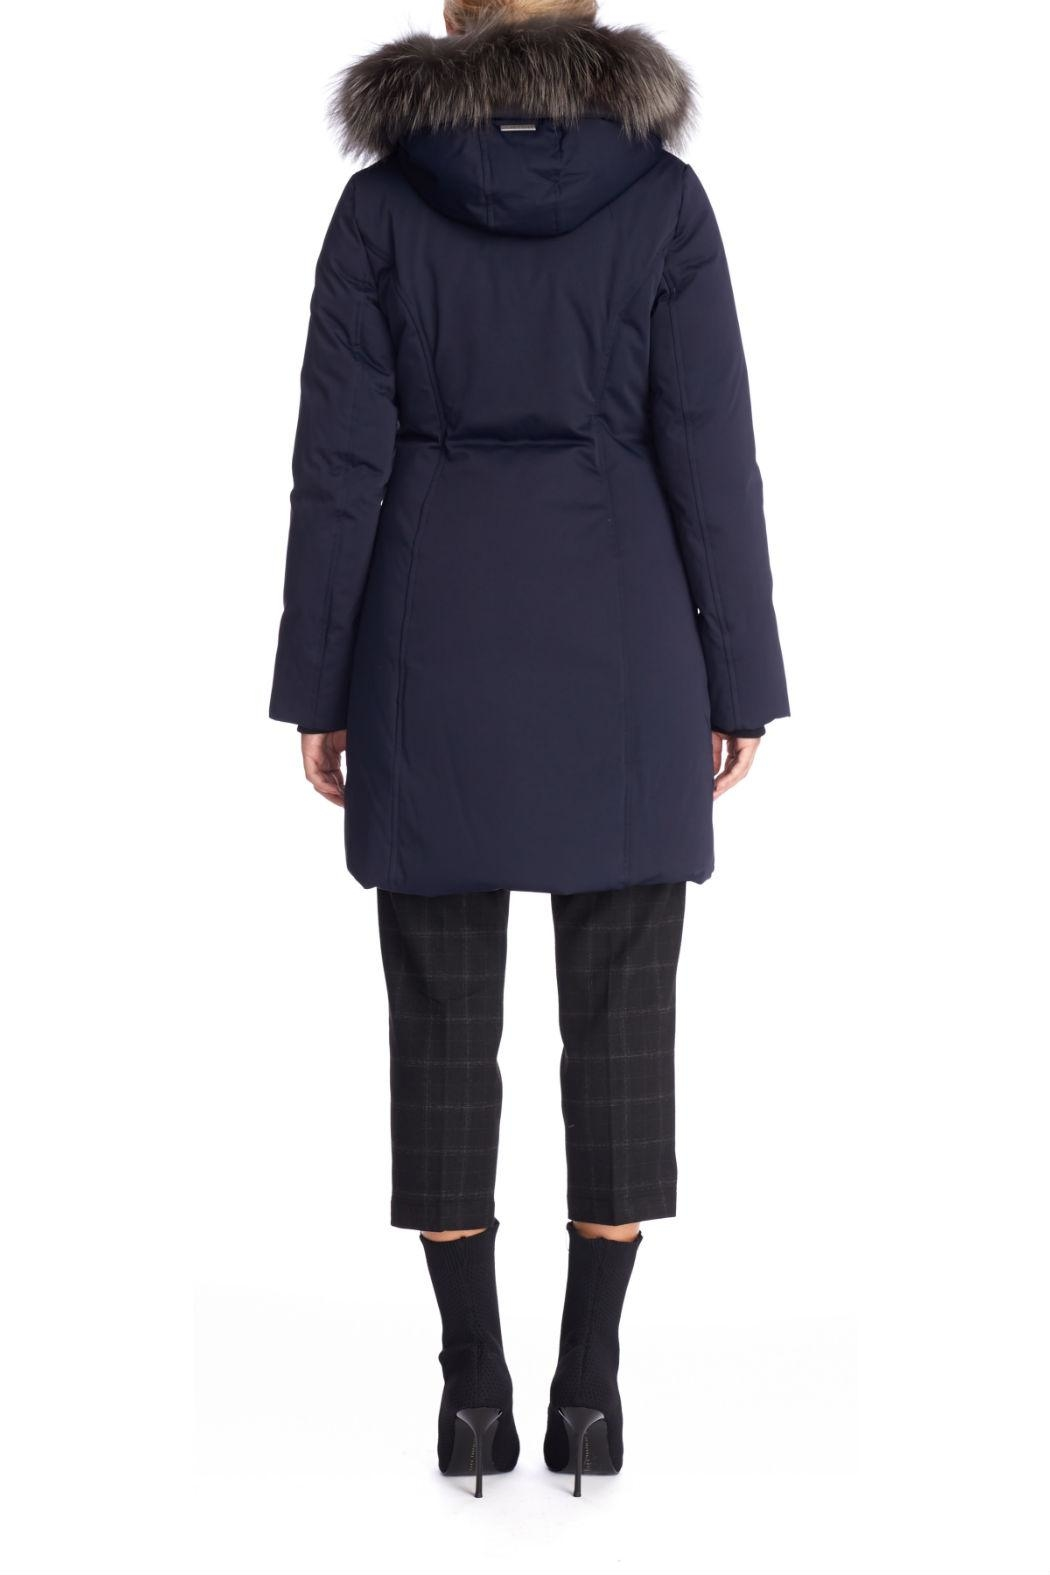 Soia & Kyo Salma Fx Down Coat - Side Cropped Image